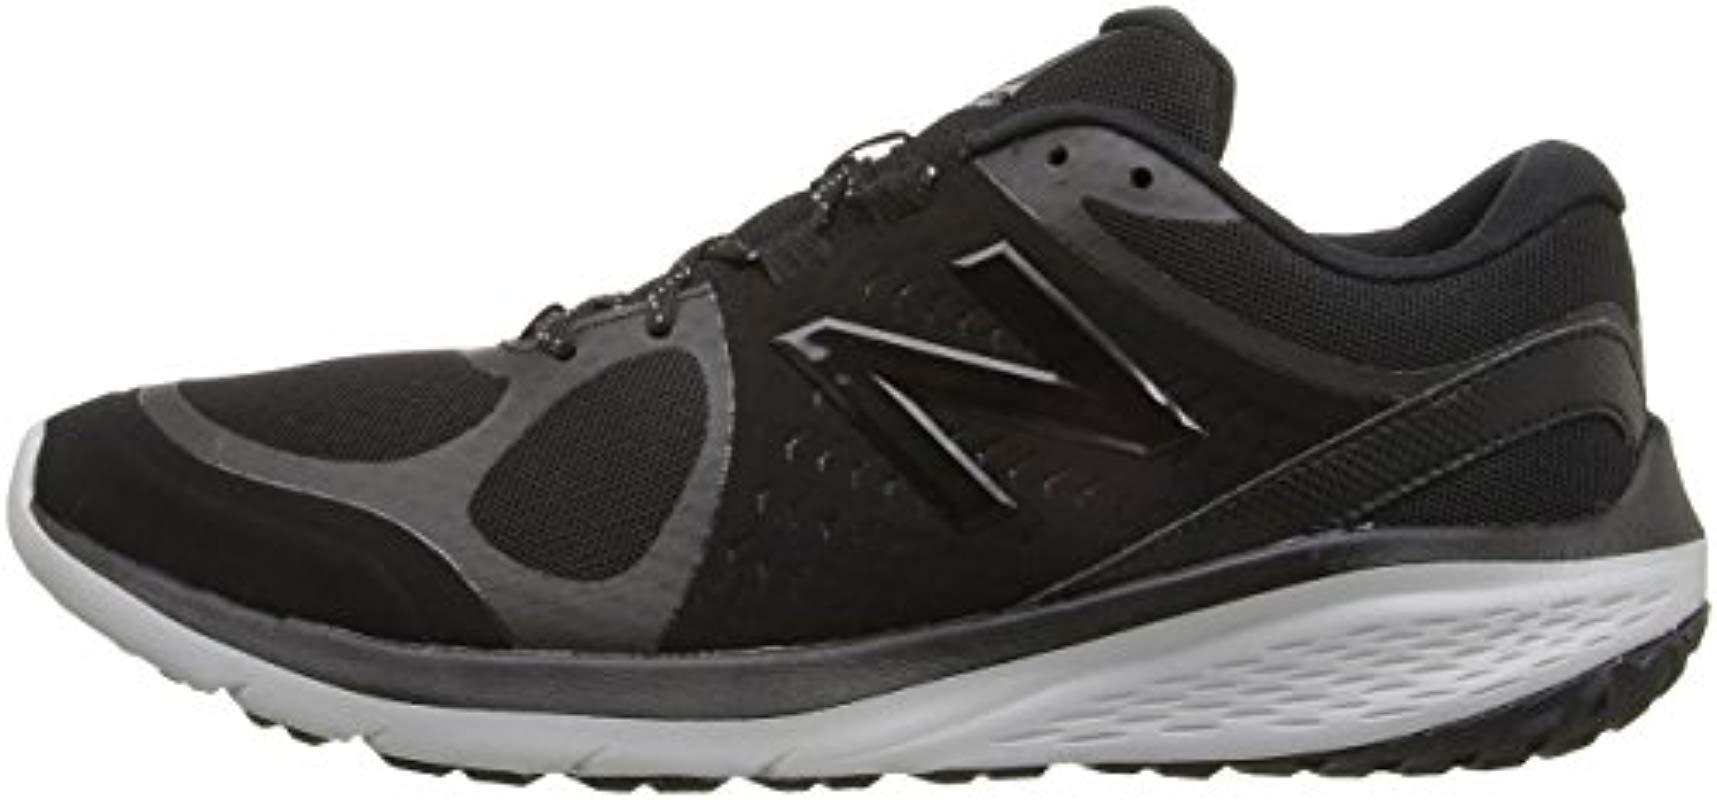 New Balance Lace 85v1 Walking Shoe in